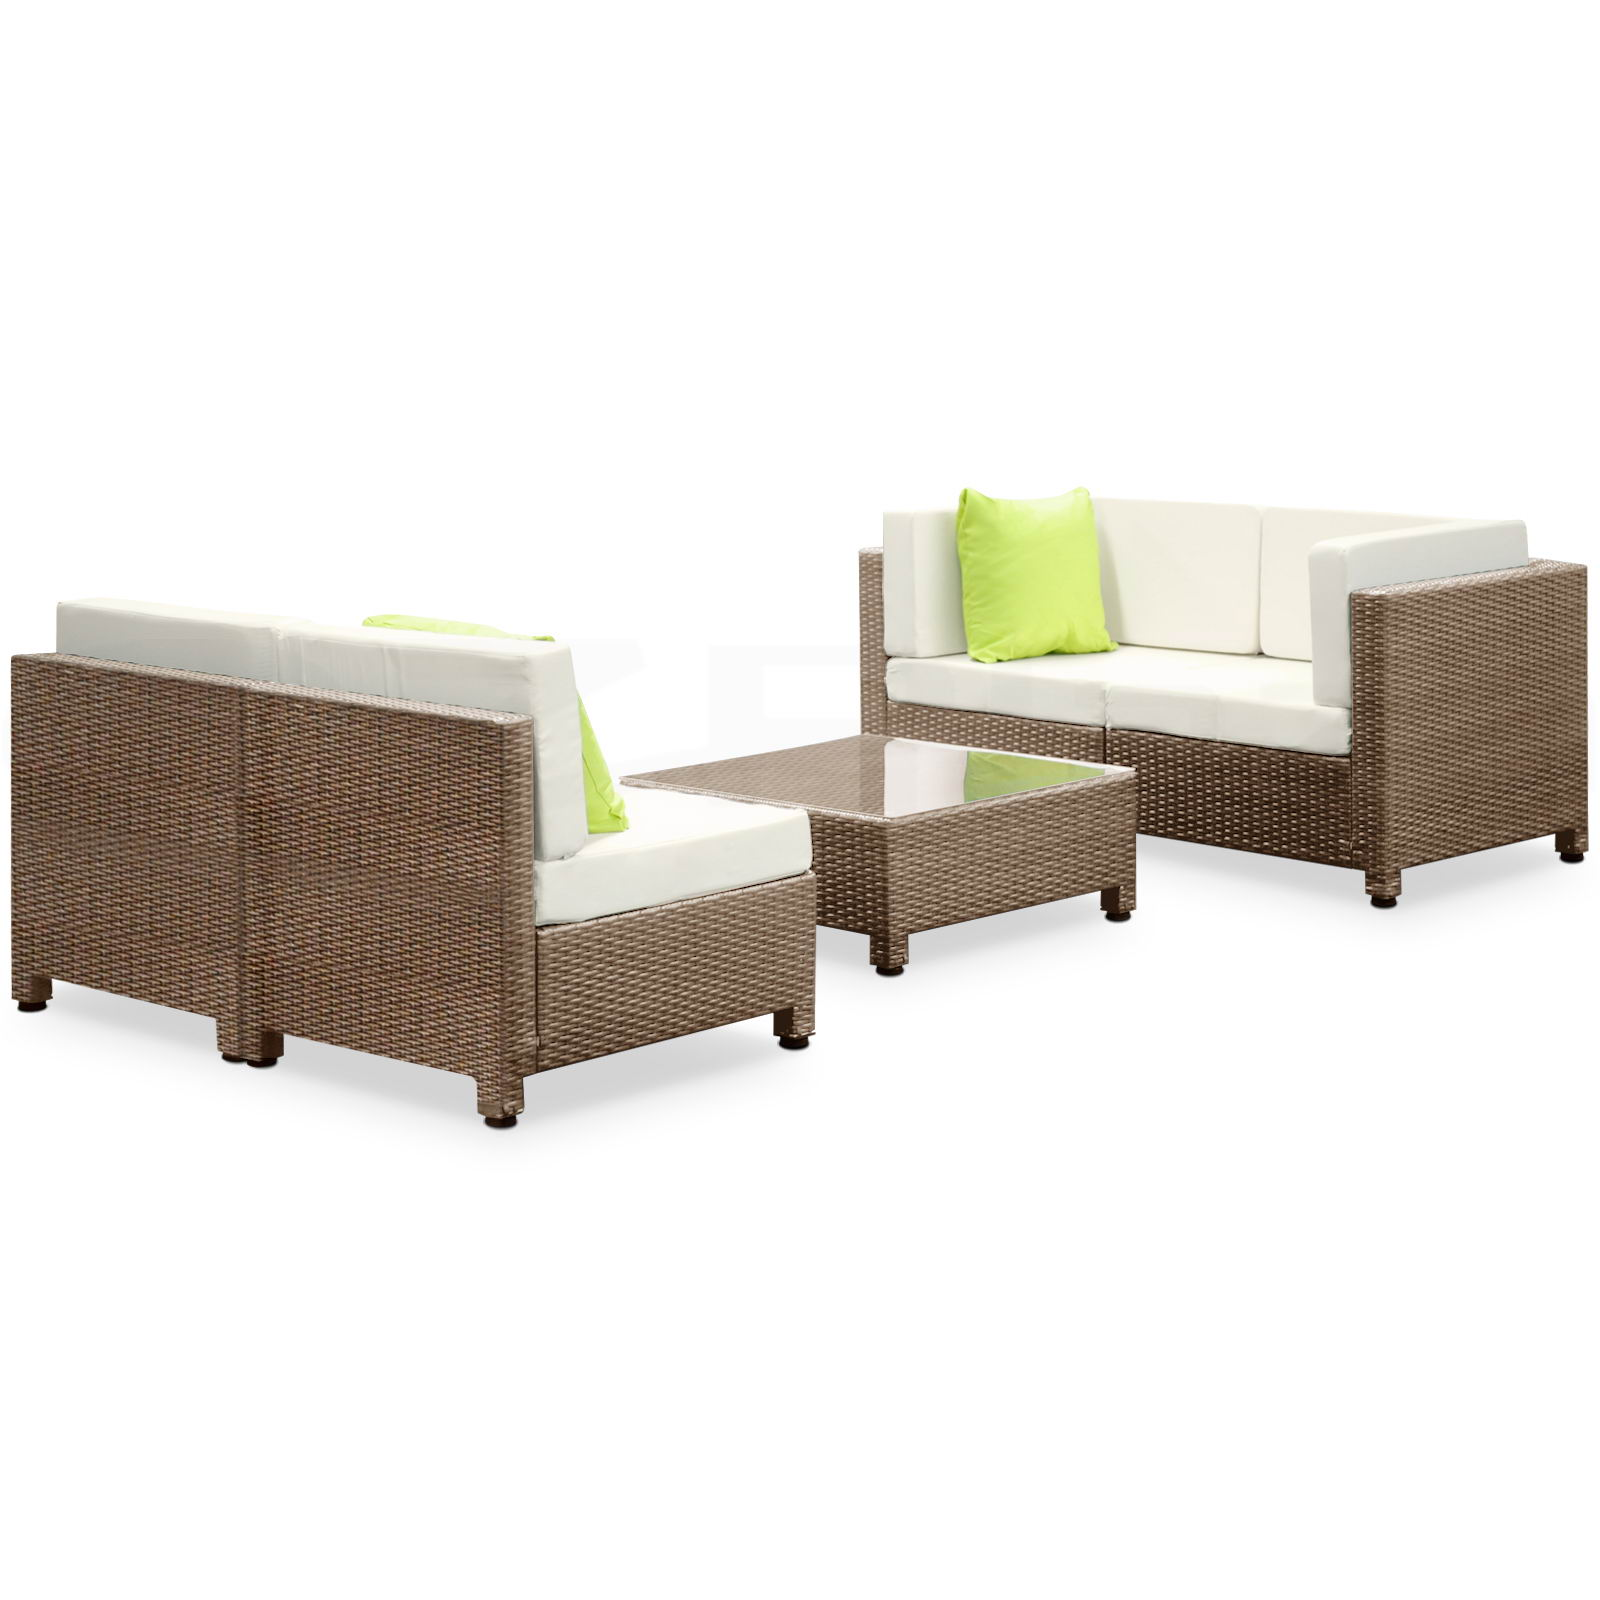 free shipping 5pcs outdoor furniture brown pe wicker garden set lounge be ebay. Black Bedroom Furniture Sets. Home Design Ideas